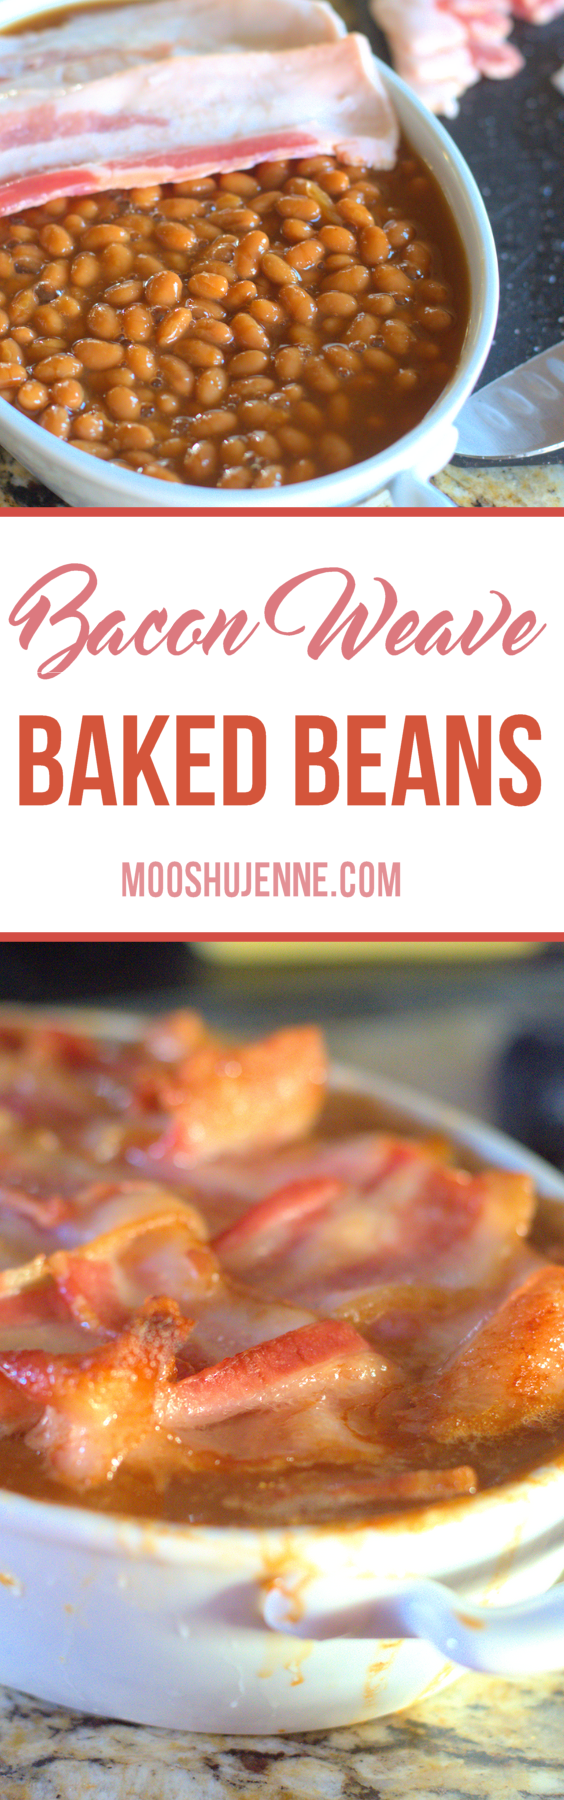 Southern baked beans topped with a bacon weave then baked to perfection.